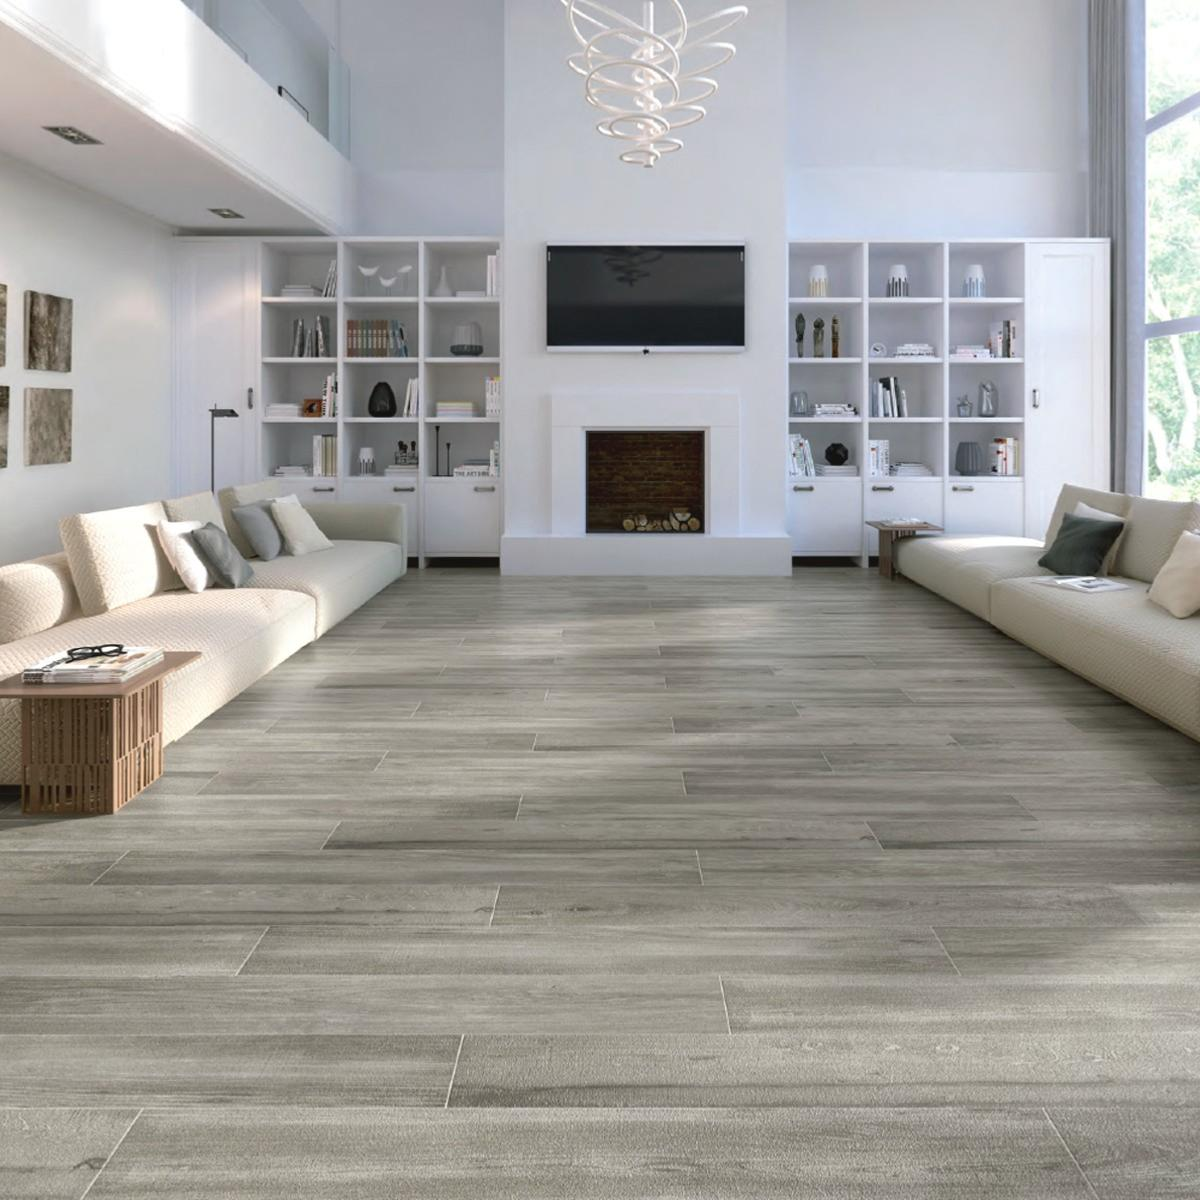 Fossilised Wood Pebble Stone Effect Ceramic Wall Floor: Alaplana Cleveland Taupe Wall And Floor Tile 23x120cm